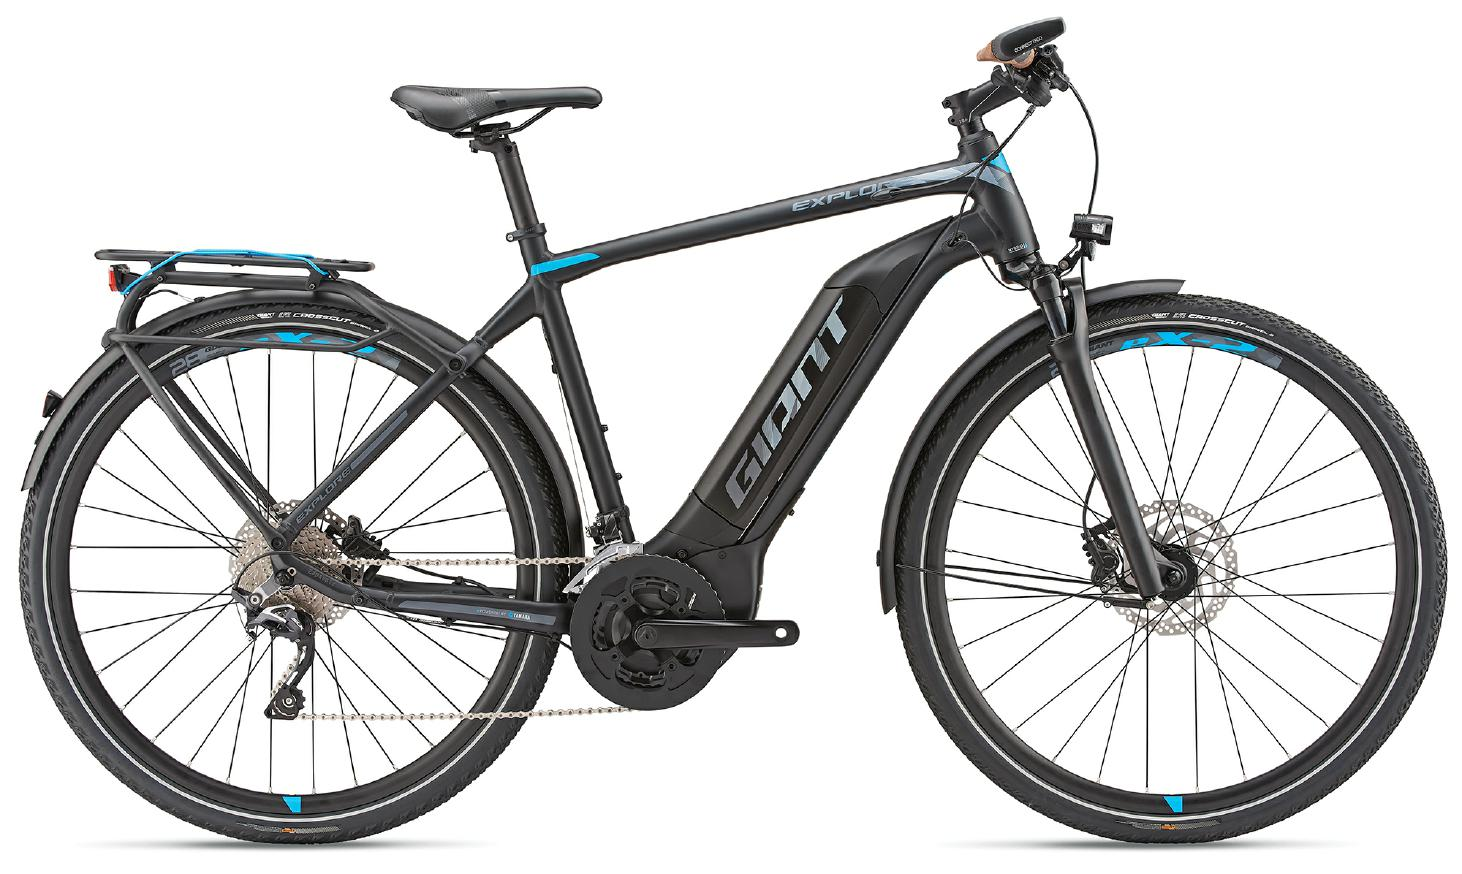 Giant Explore E+ 1 - GTS - Trekking e-Bike - 2019